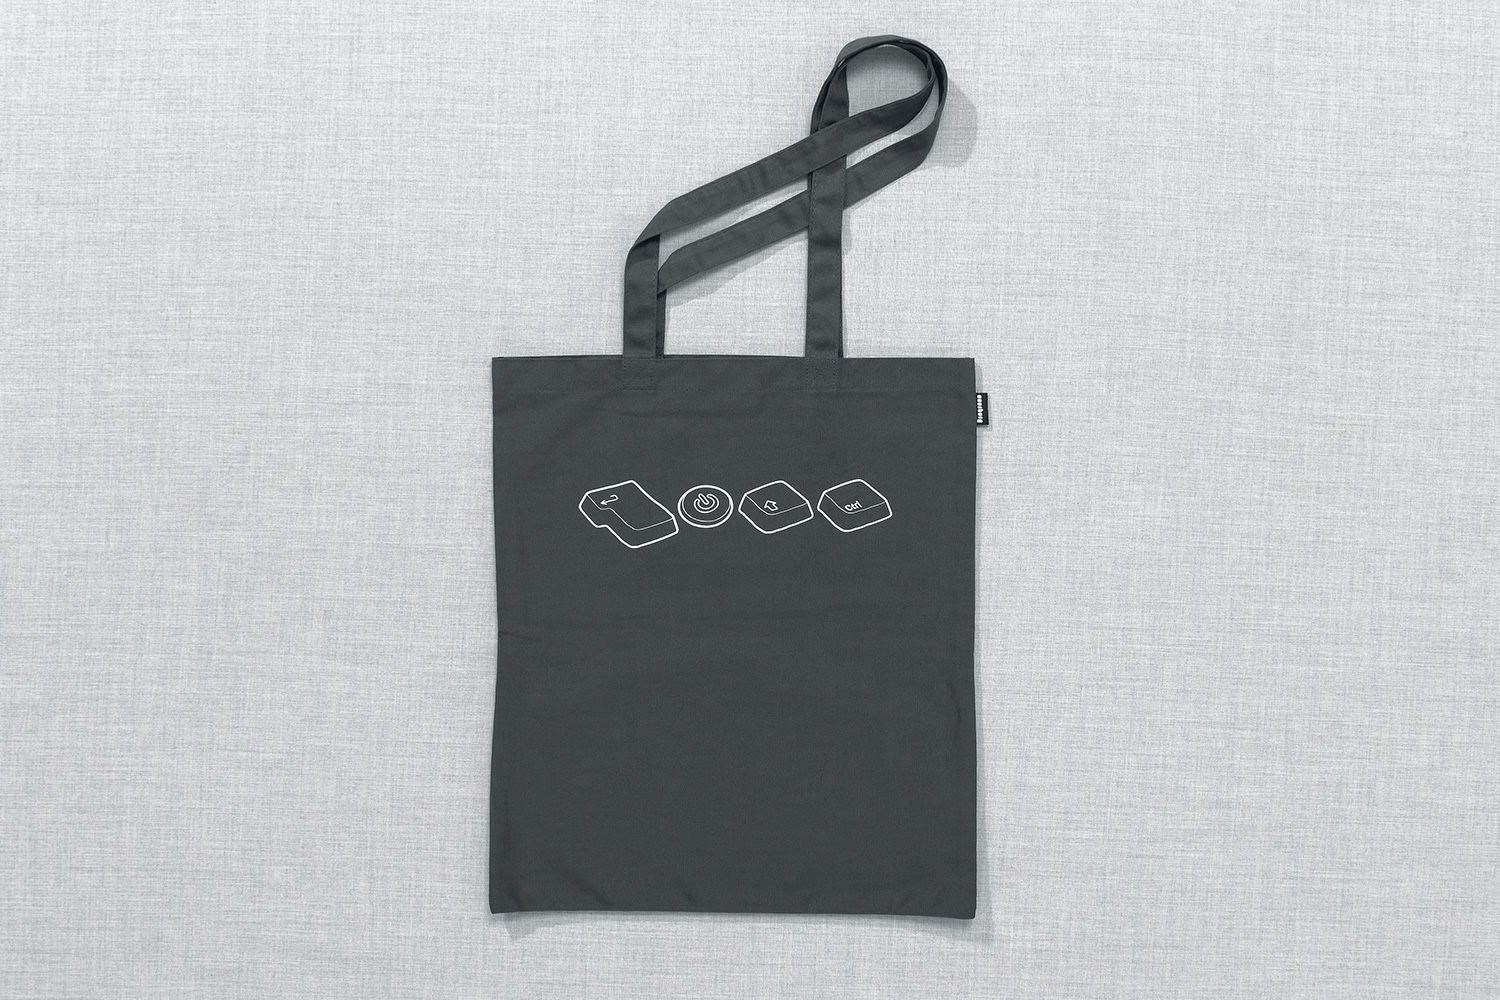 Progress Packaging Re Bag Tote Creative Luxury Bespoke TDR The Designers Republic Screen Printed Canvas